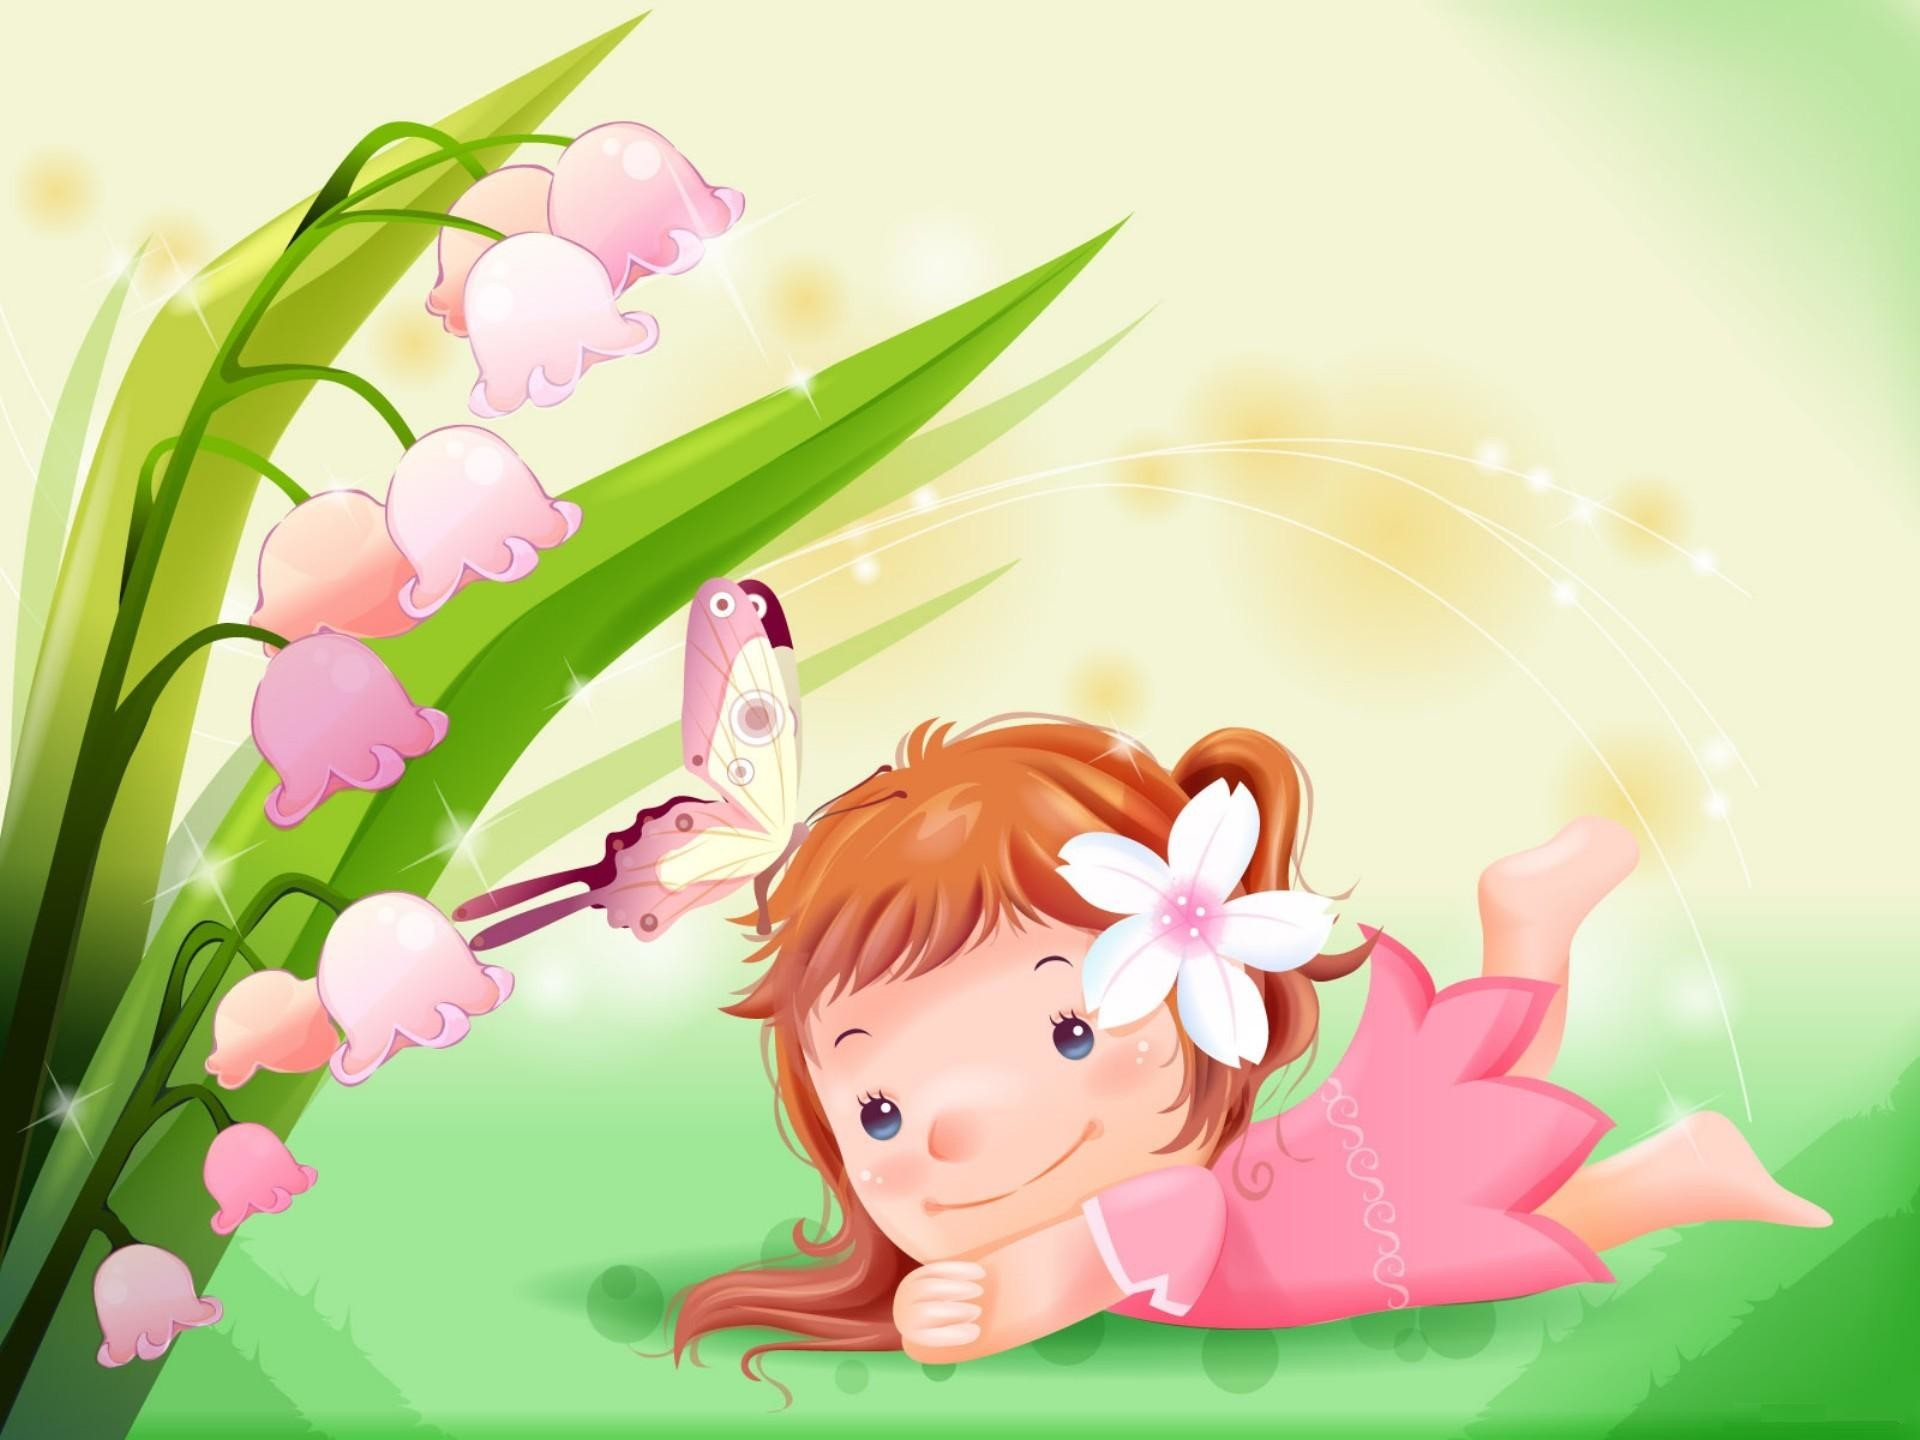 Wallpaper Of Cute Cartoon 56 Images